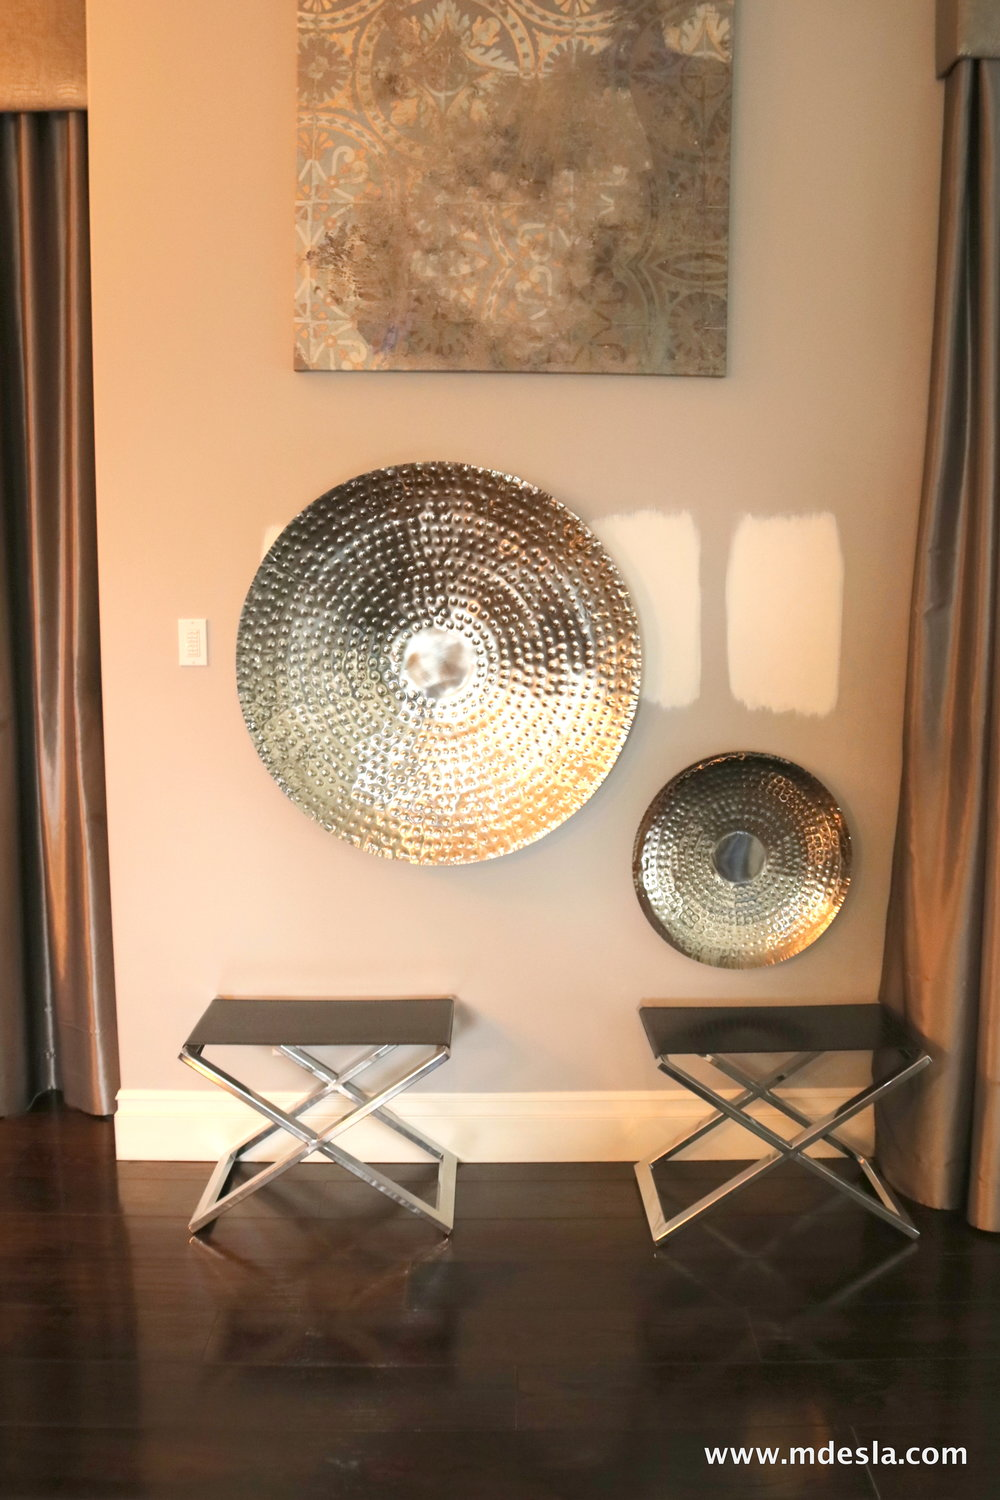 WALL DECO AND CHAIRS.JPG